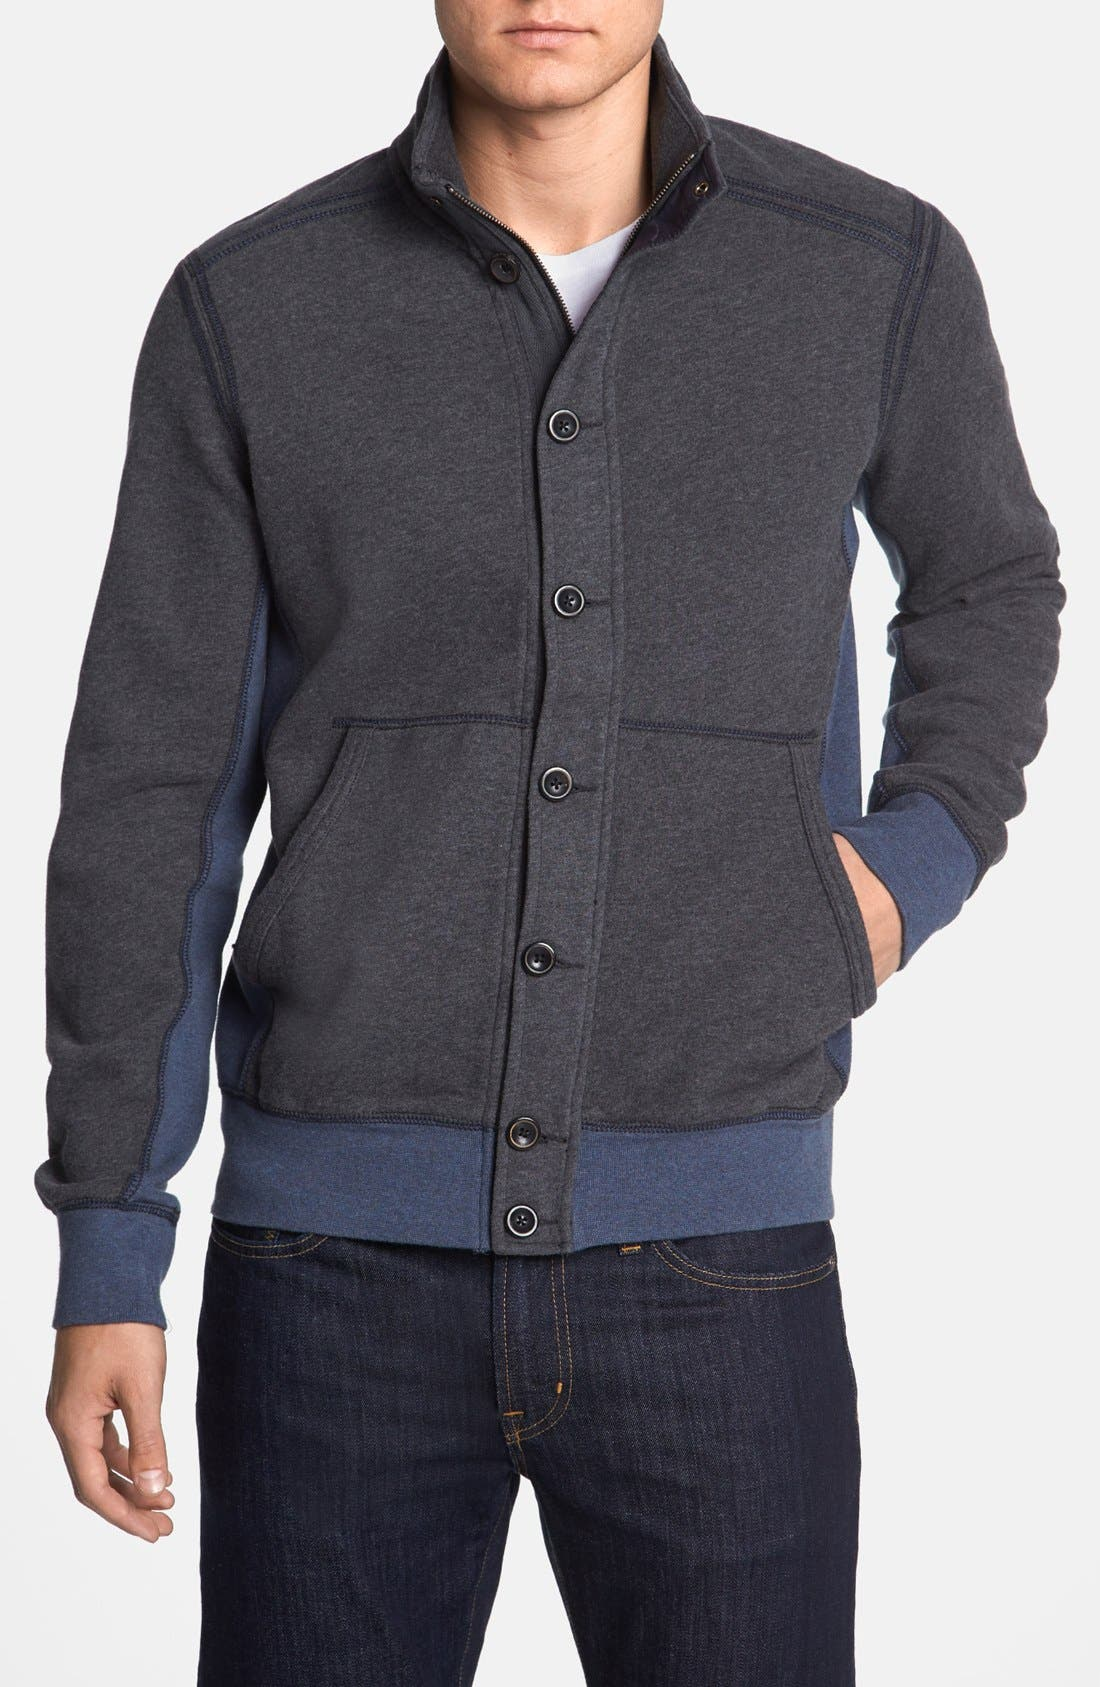 Main Image - Tommy Bahama Denim 'Explorer' Island Modern Fit Sweatshirt